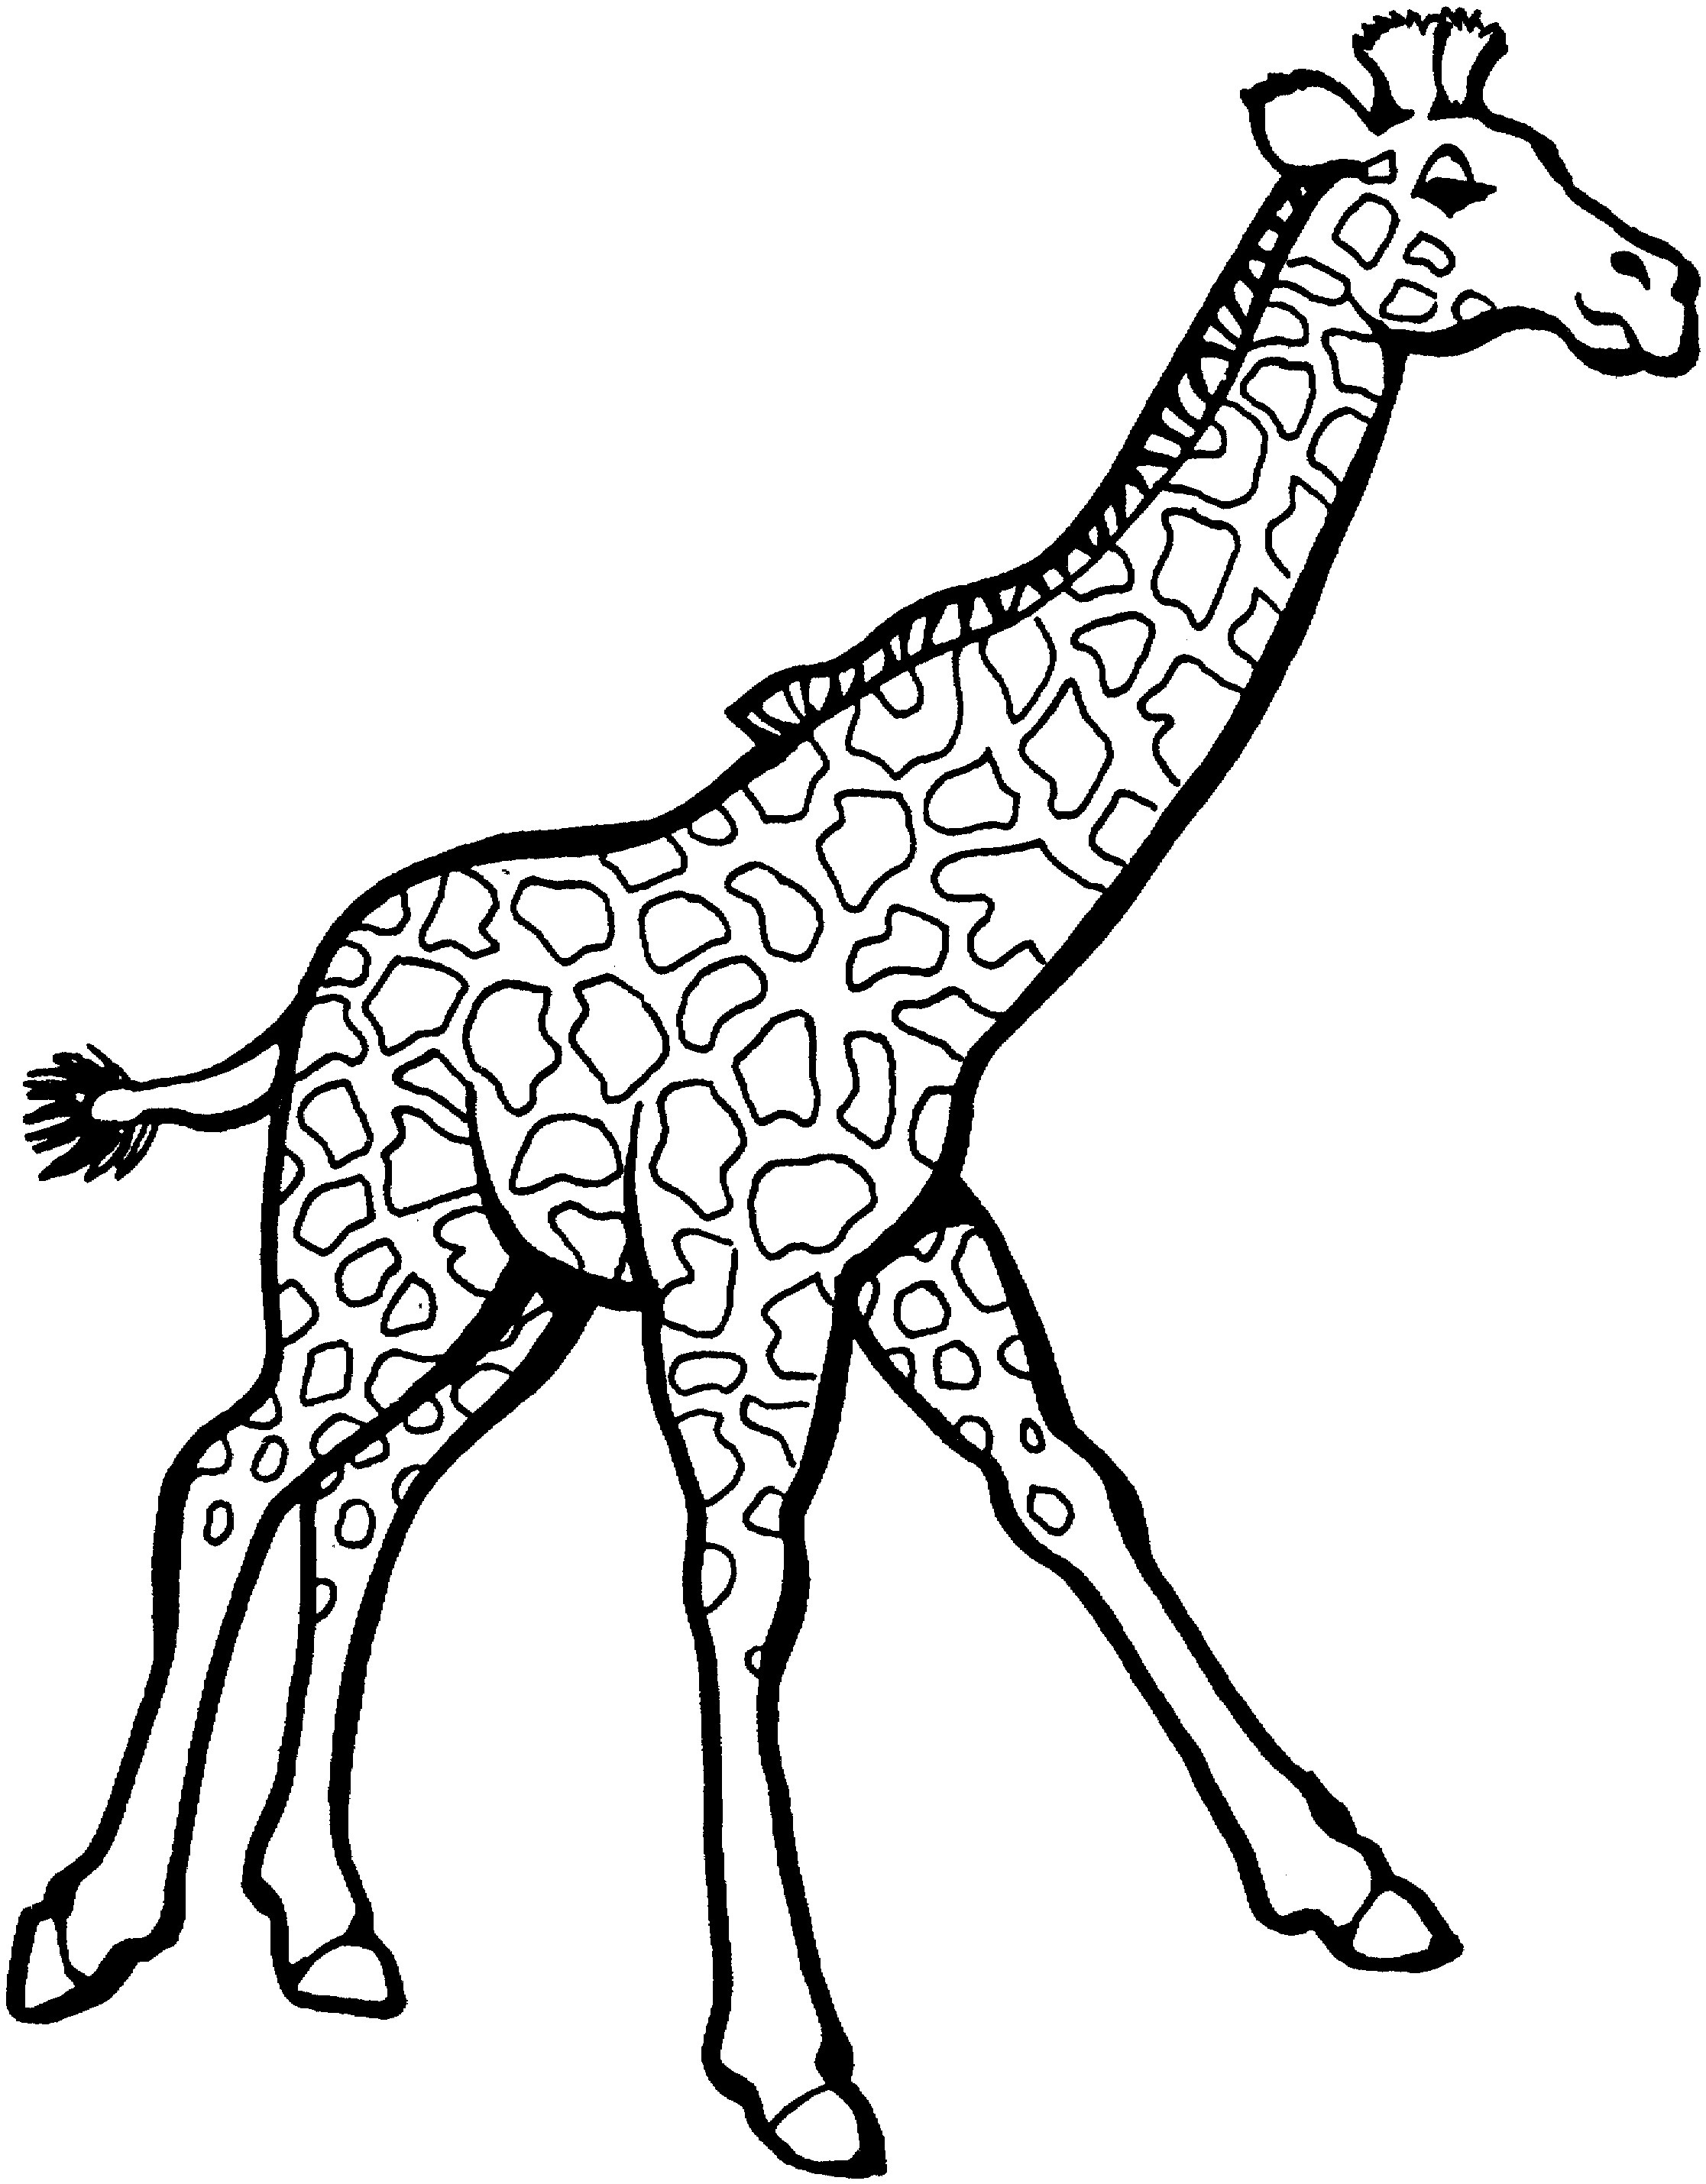 2233x2859 Giraffe Animals Coloring Pages For Kids Inspirational Amazing